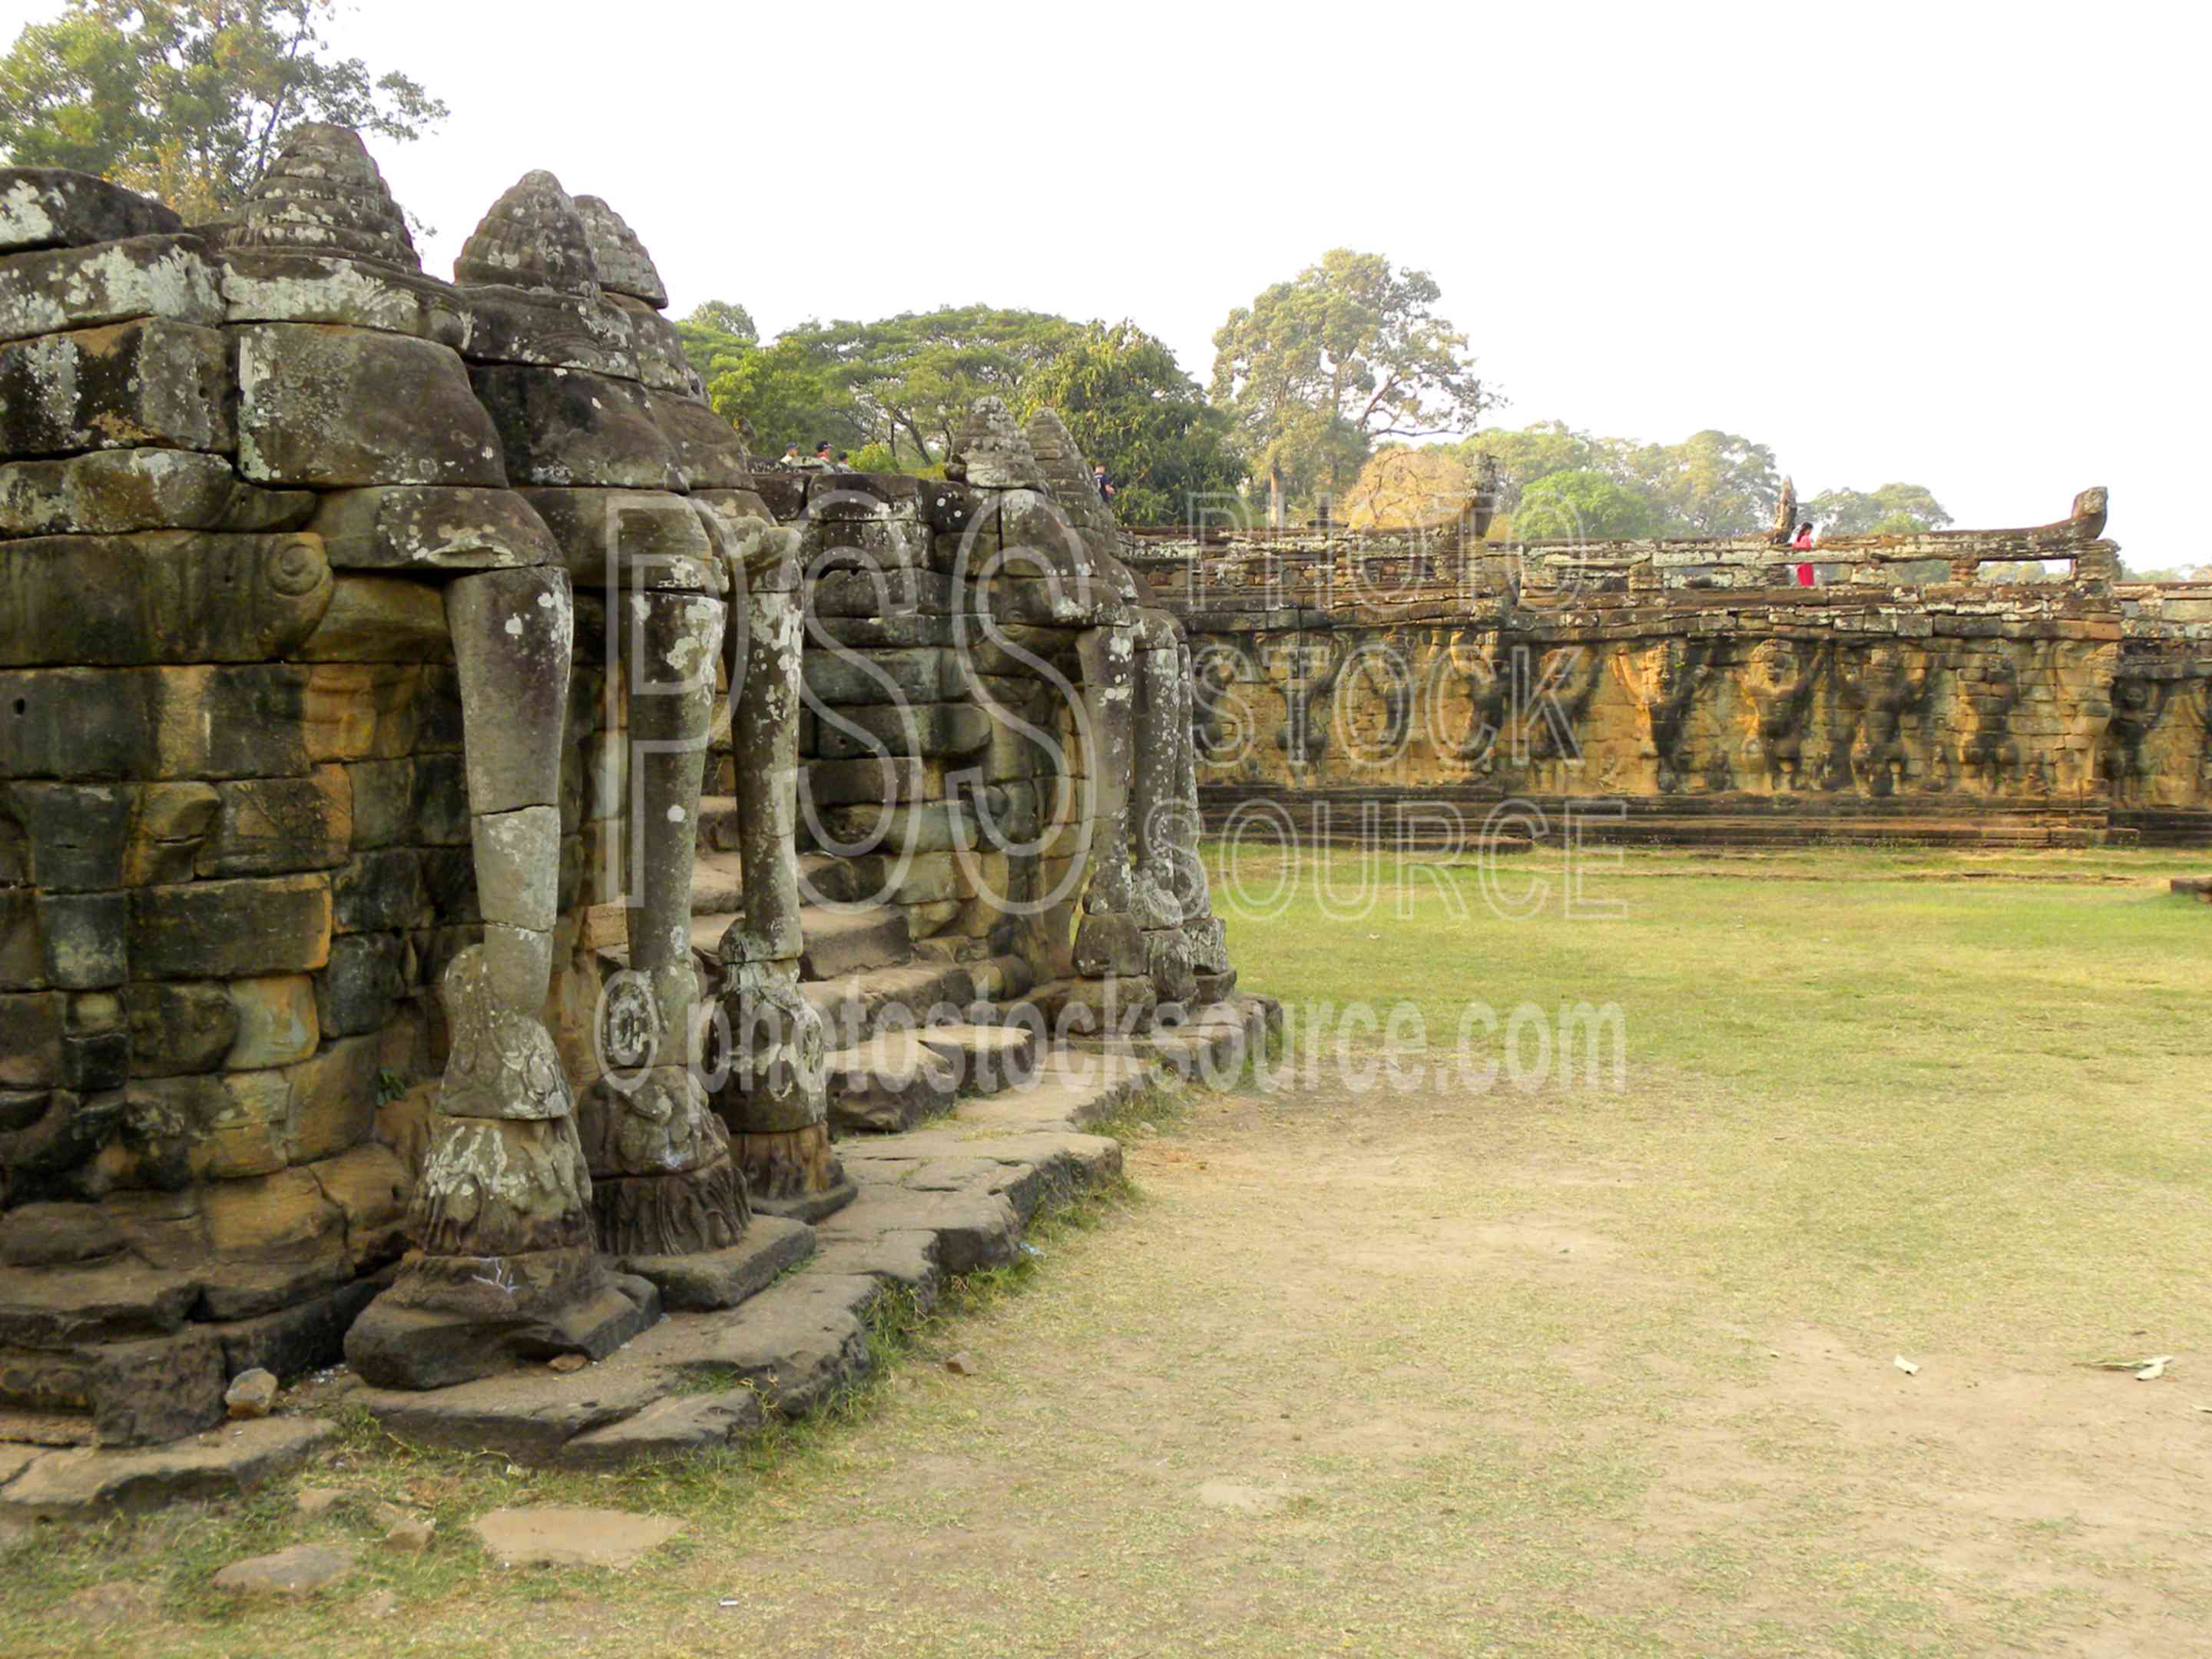 Three Headed Elephant,temple,gate,statues,ruin,elephant,three headed elephant,airavata